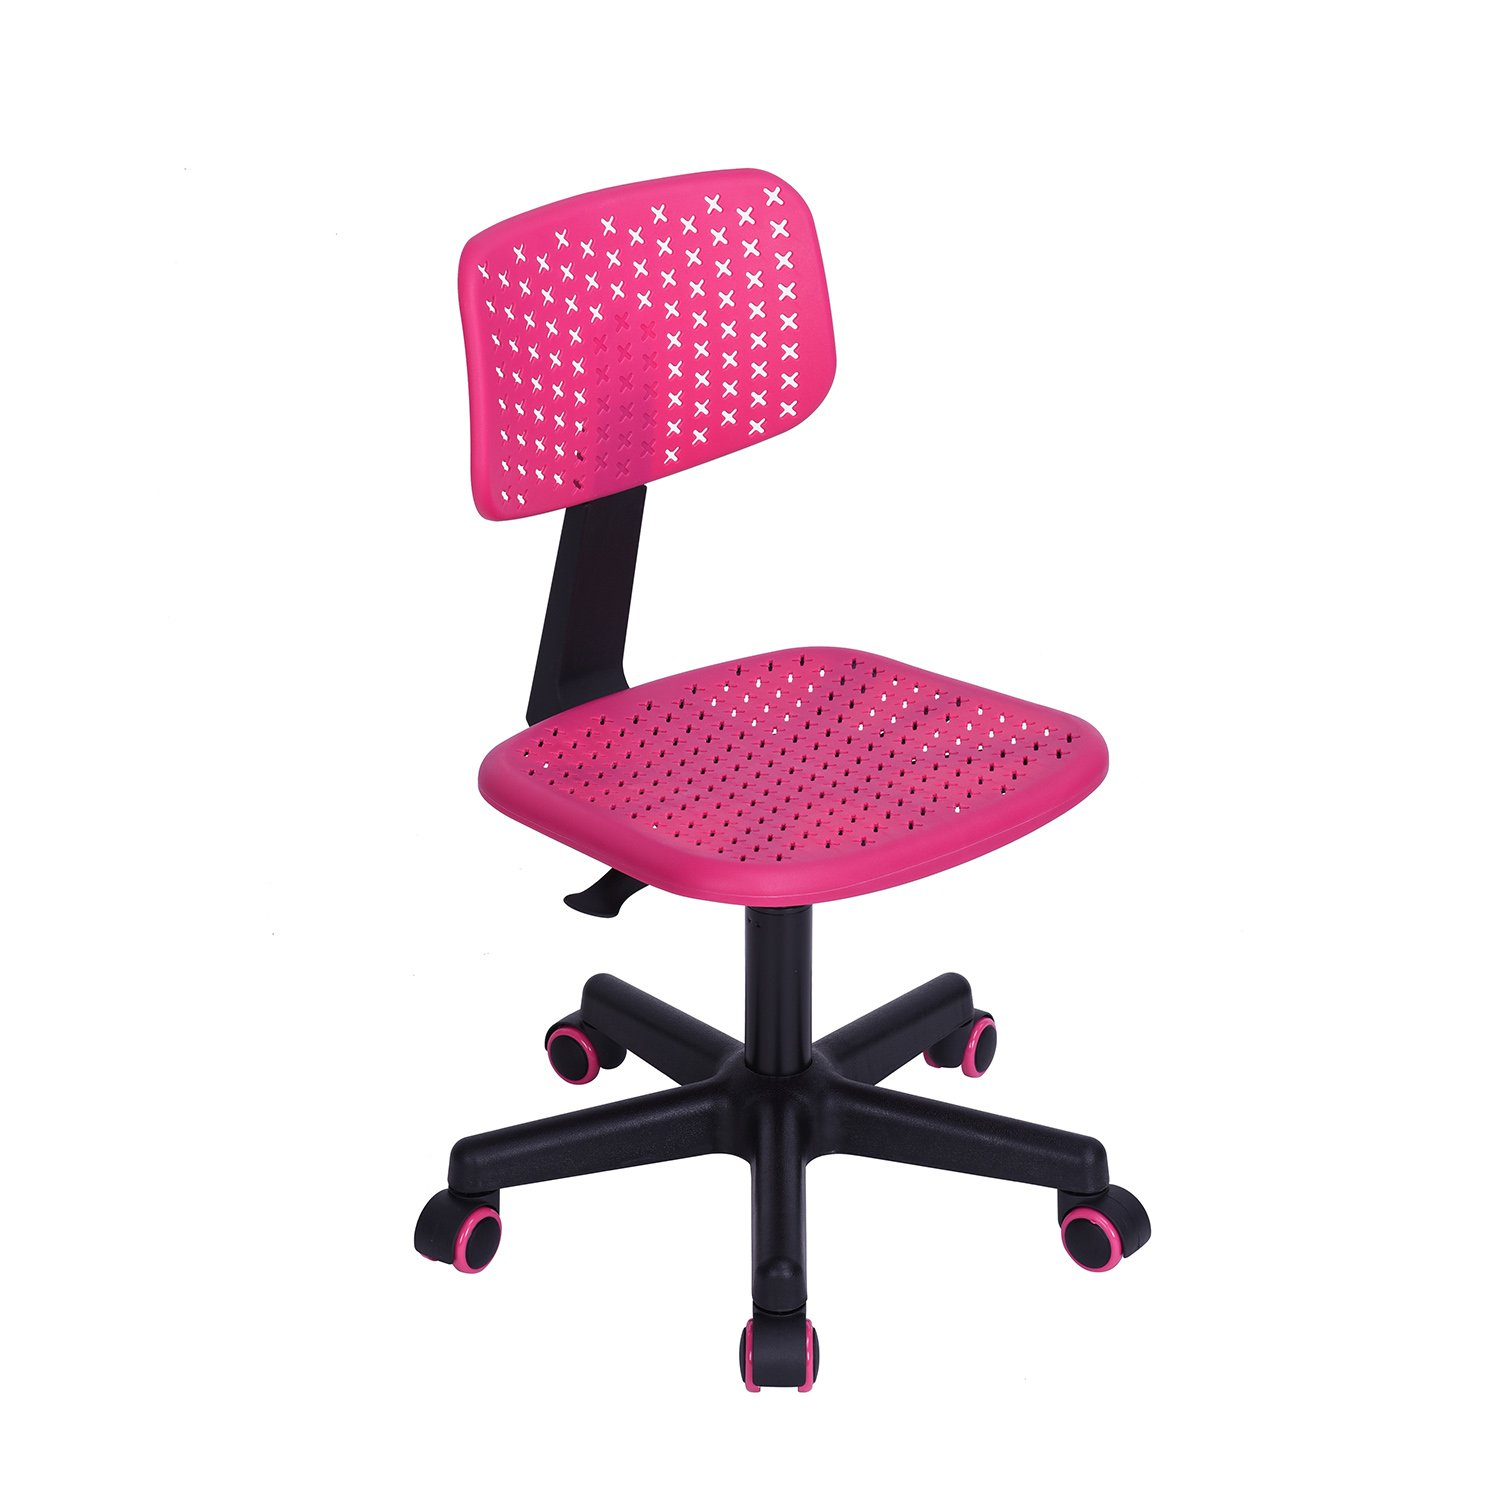 GreenForest Children Student Chair, Low-Back Armless Adjustable Swivel Ergonomic Home Office Student Computer Desk Chair, Hollow Star Pink